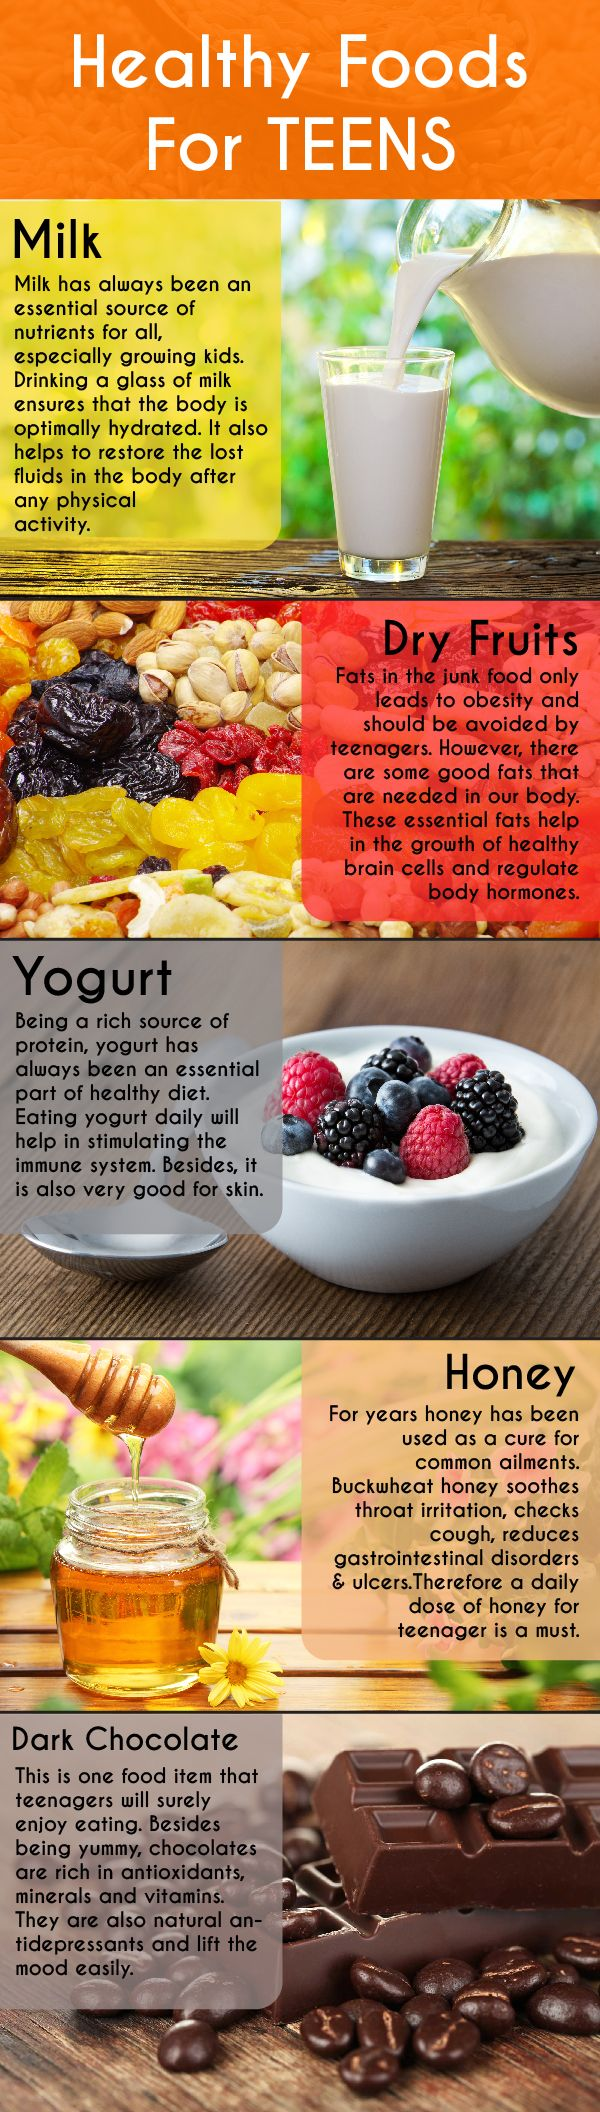 Daily diet for good health - Best 25 Nutrition Ideas On Pinterest Healthy Nutrition Nutrition Tips And Healthy Eating Habits